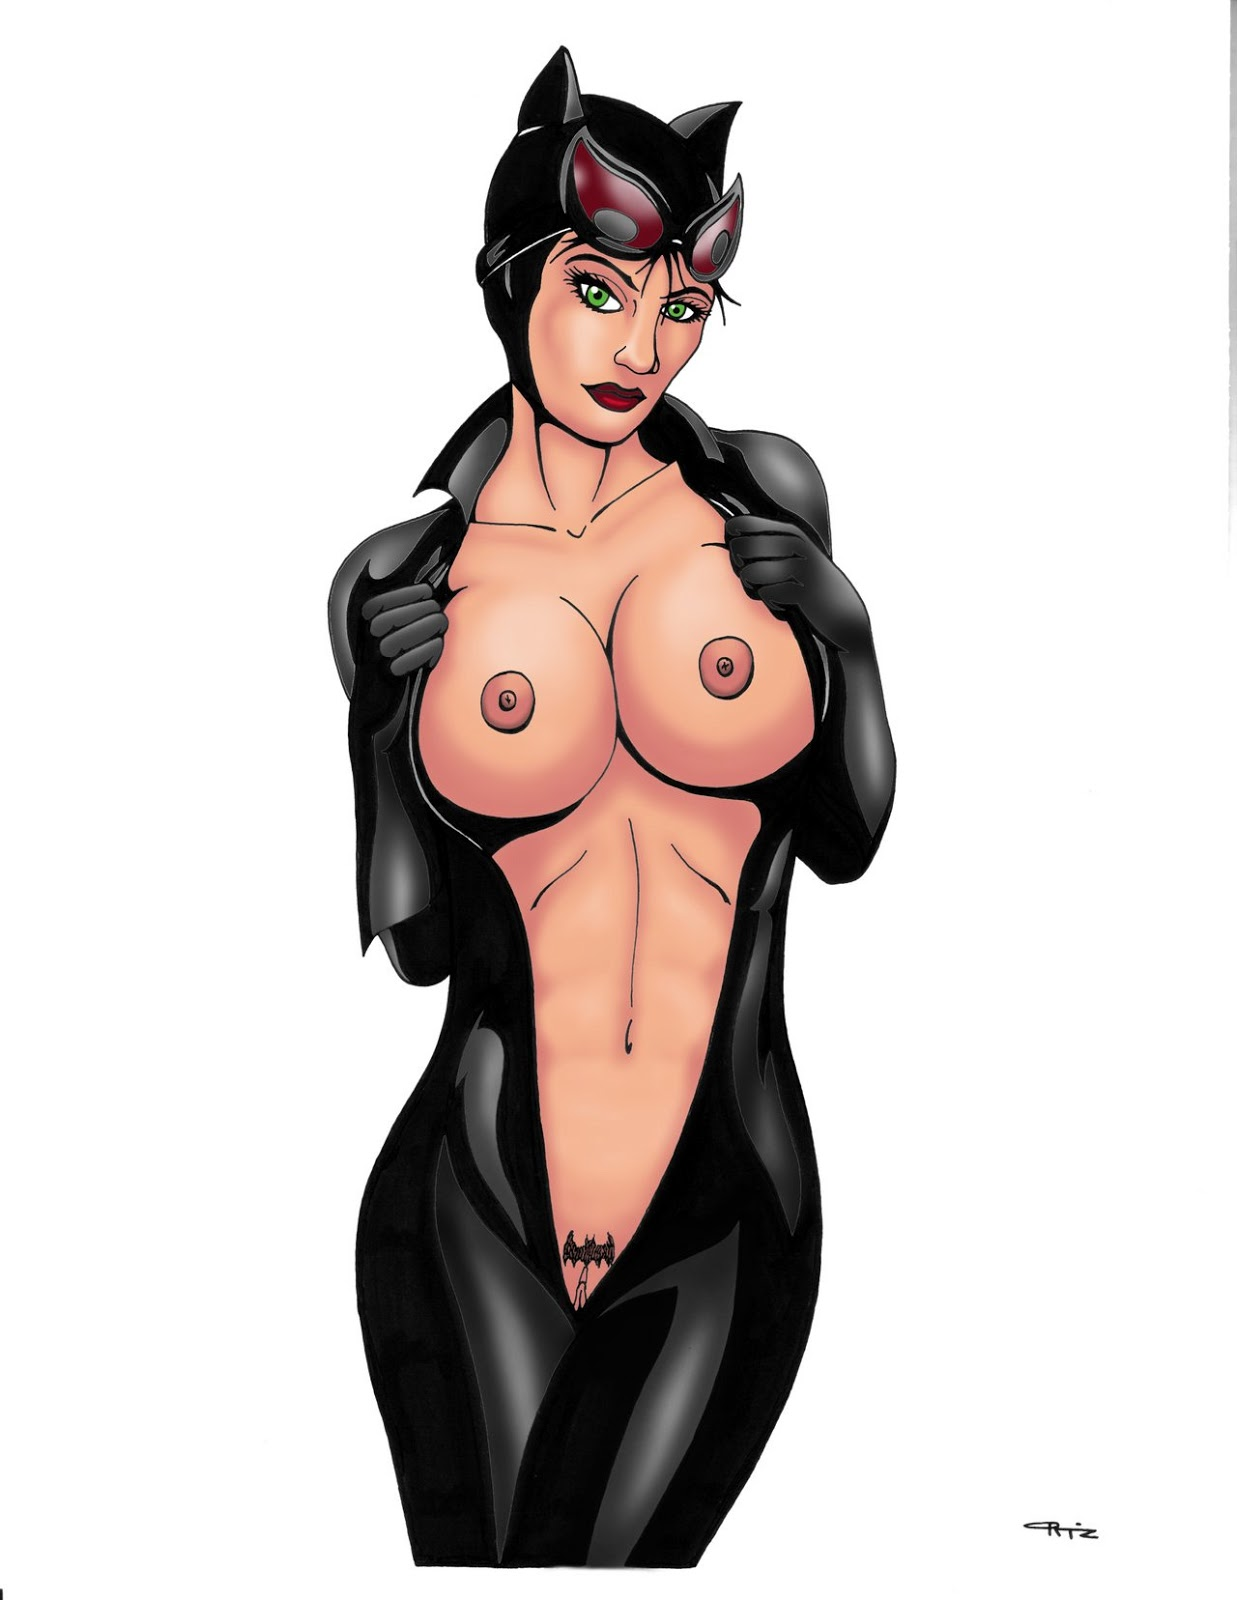 Naked catwoman hentai porno video